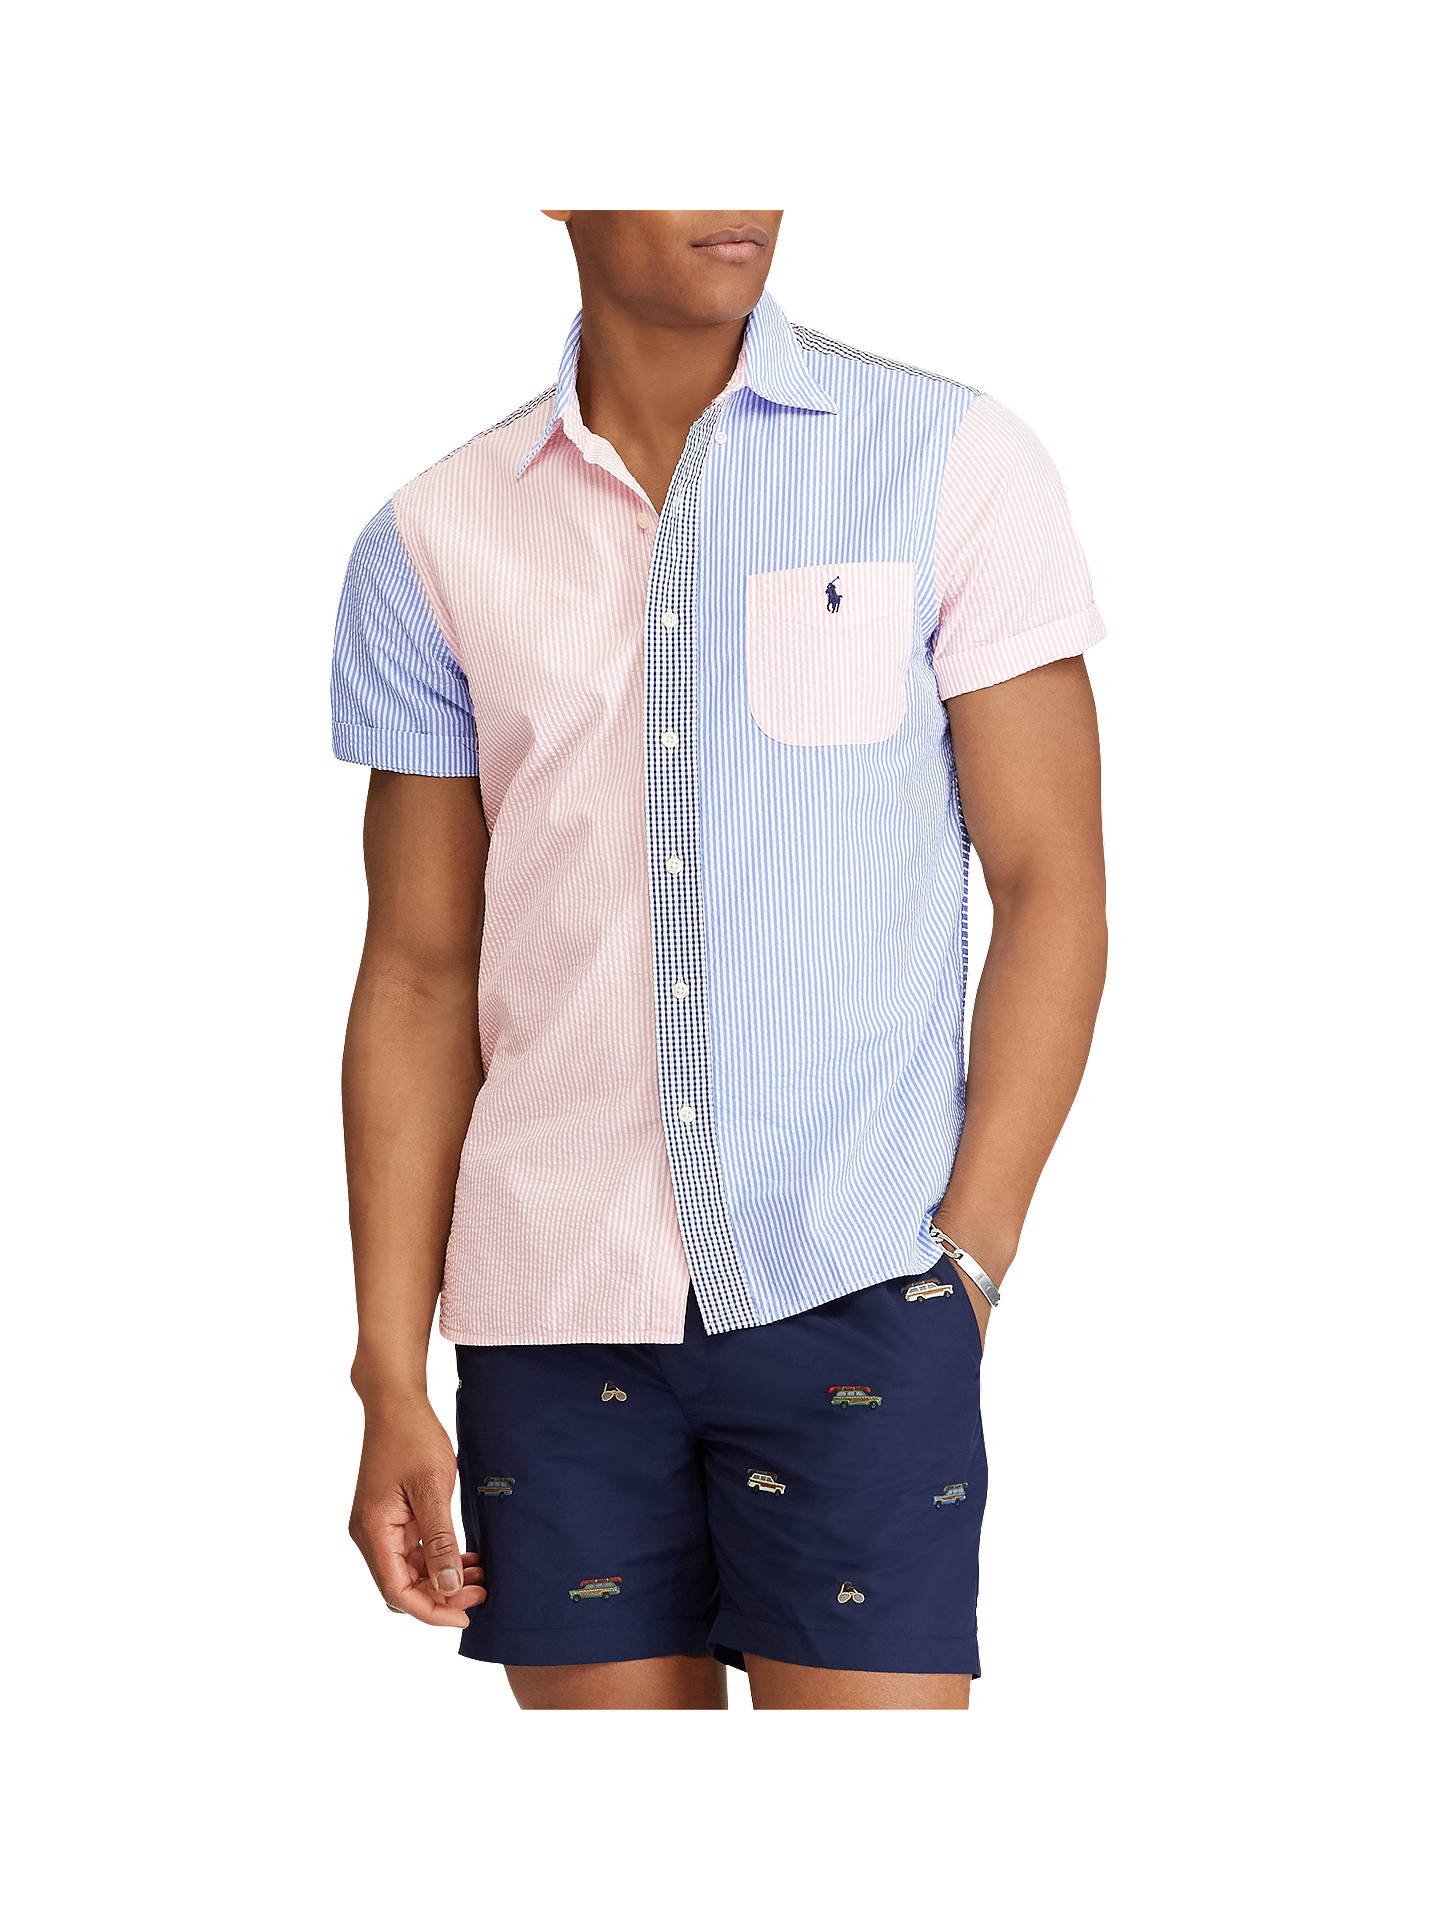 2c710da9e Buy Polo Ralph Lauren Seersucker Short Sleeve Stripe Shirt, Pink/Blue, S  Online ...